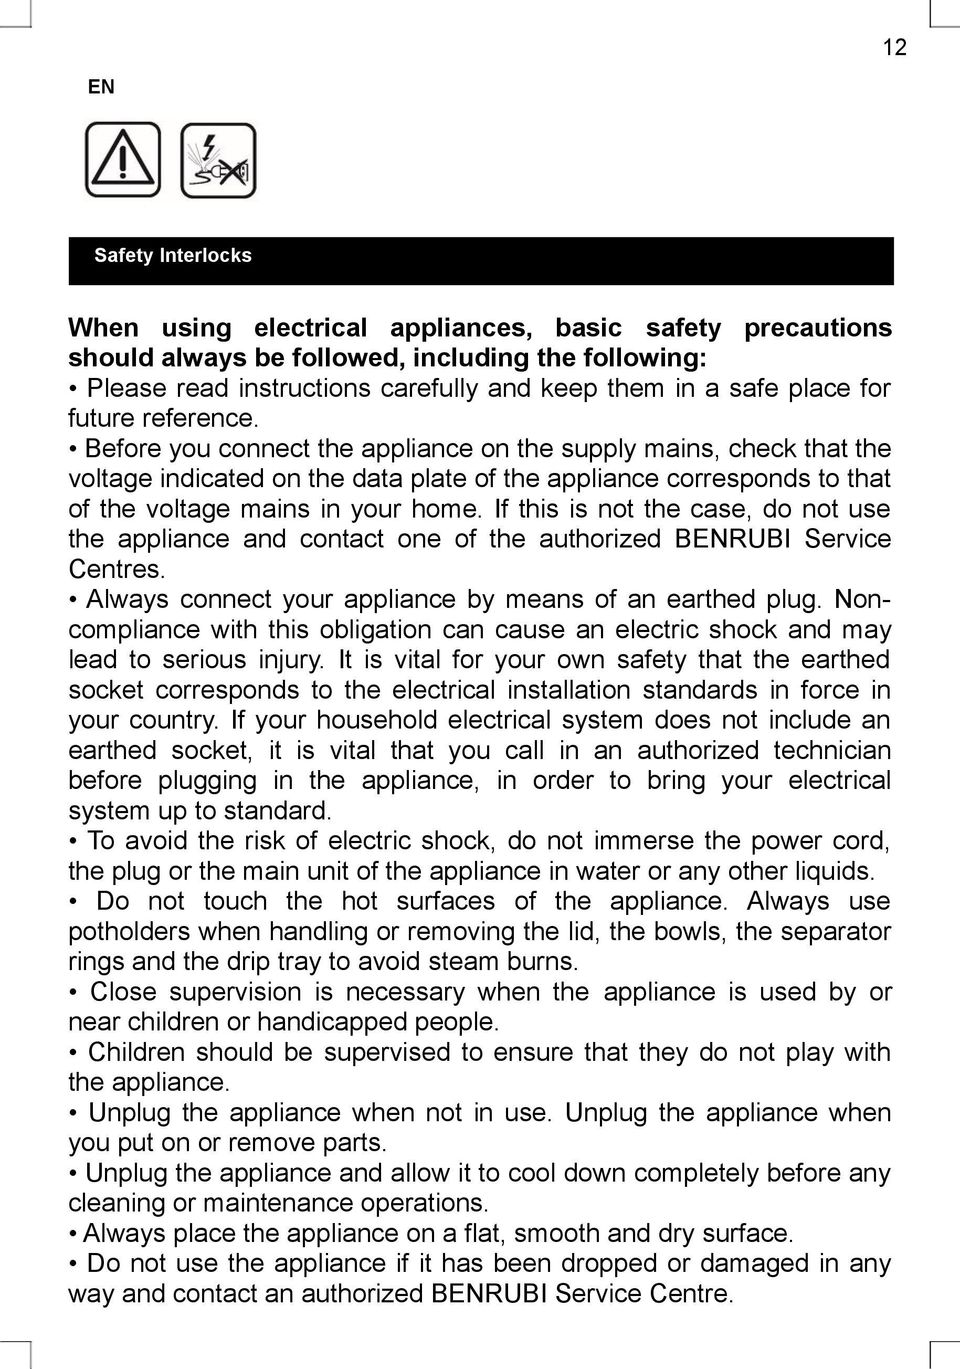 If this is not the case, do not use the appliance and contact one of the authorized BENRUBI Service Centres. Always connect your appliance by means of an earthed plug.